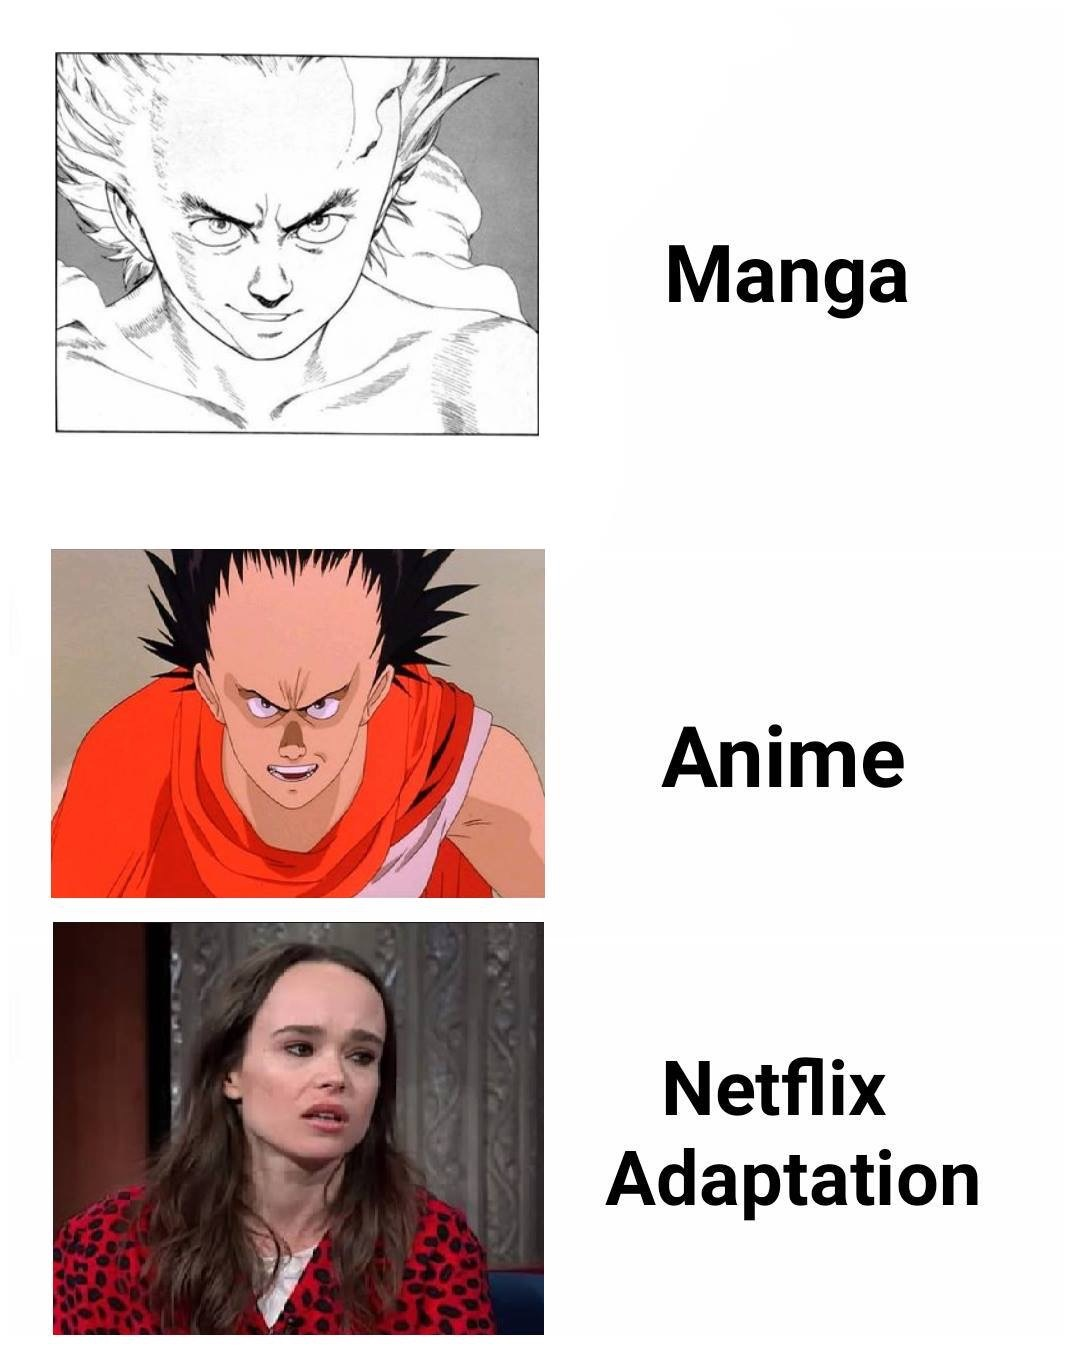 dongs in an adaptation - meme